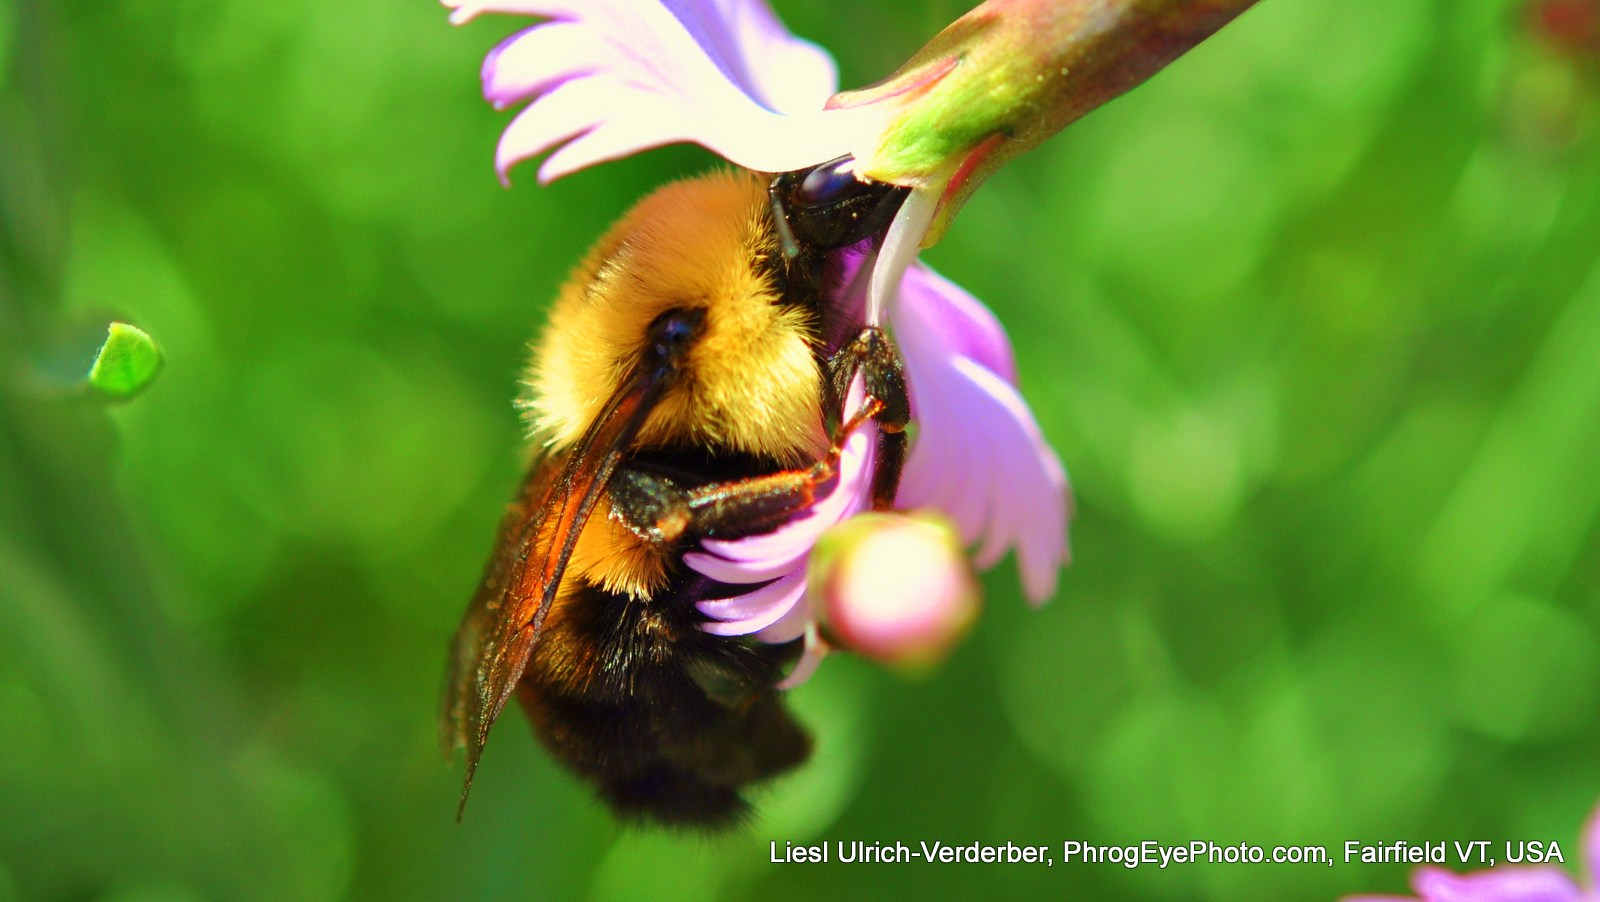 Image: Bumble Bee dangling from a flower